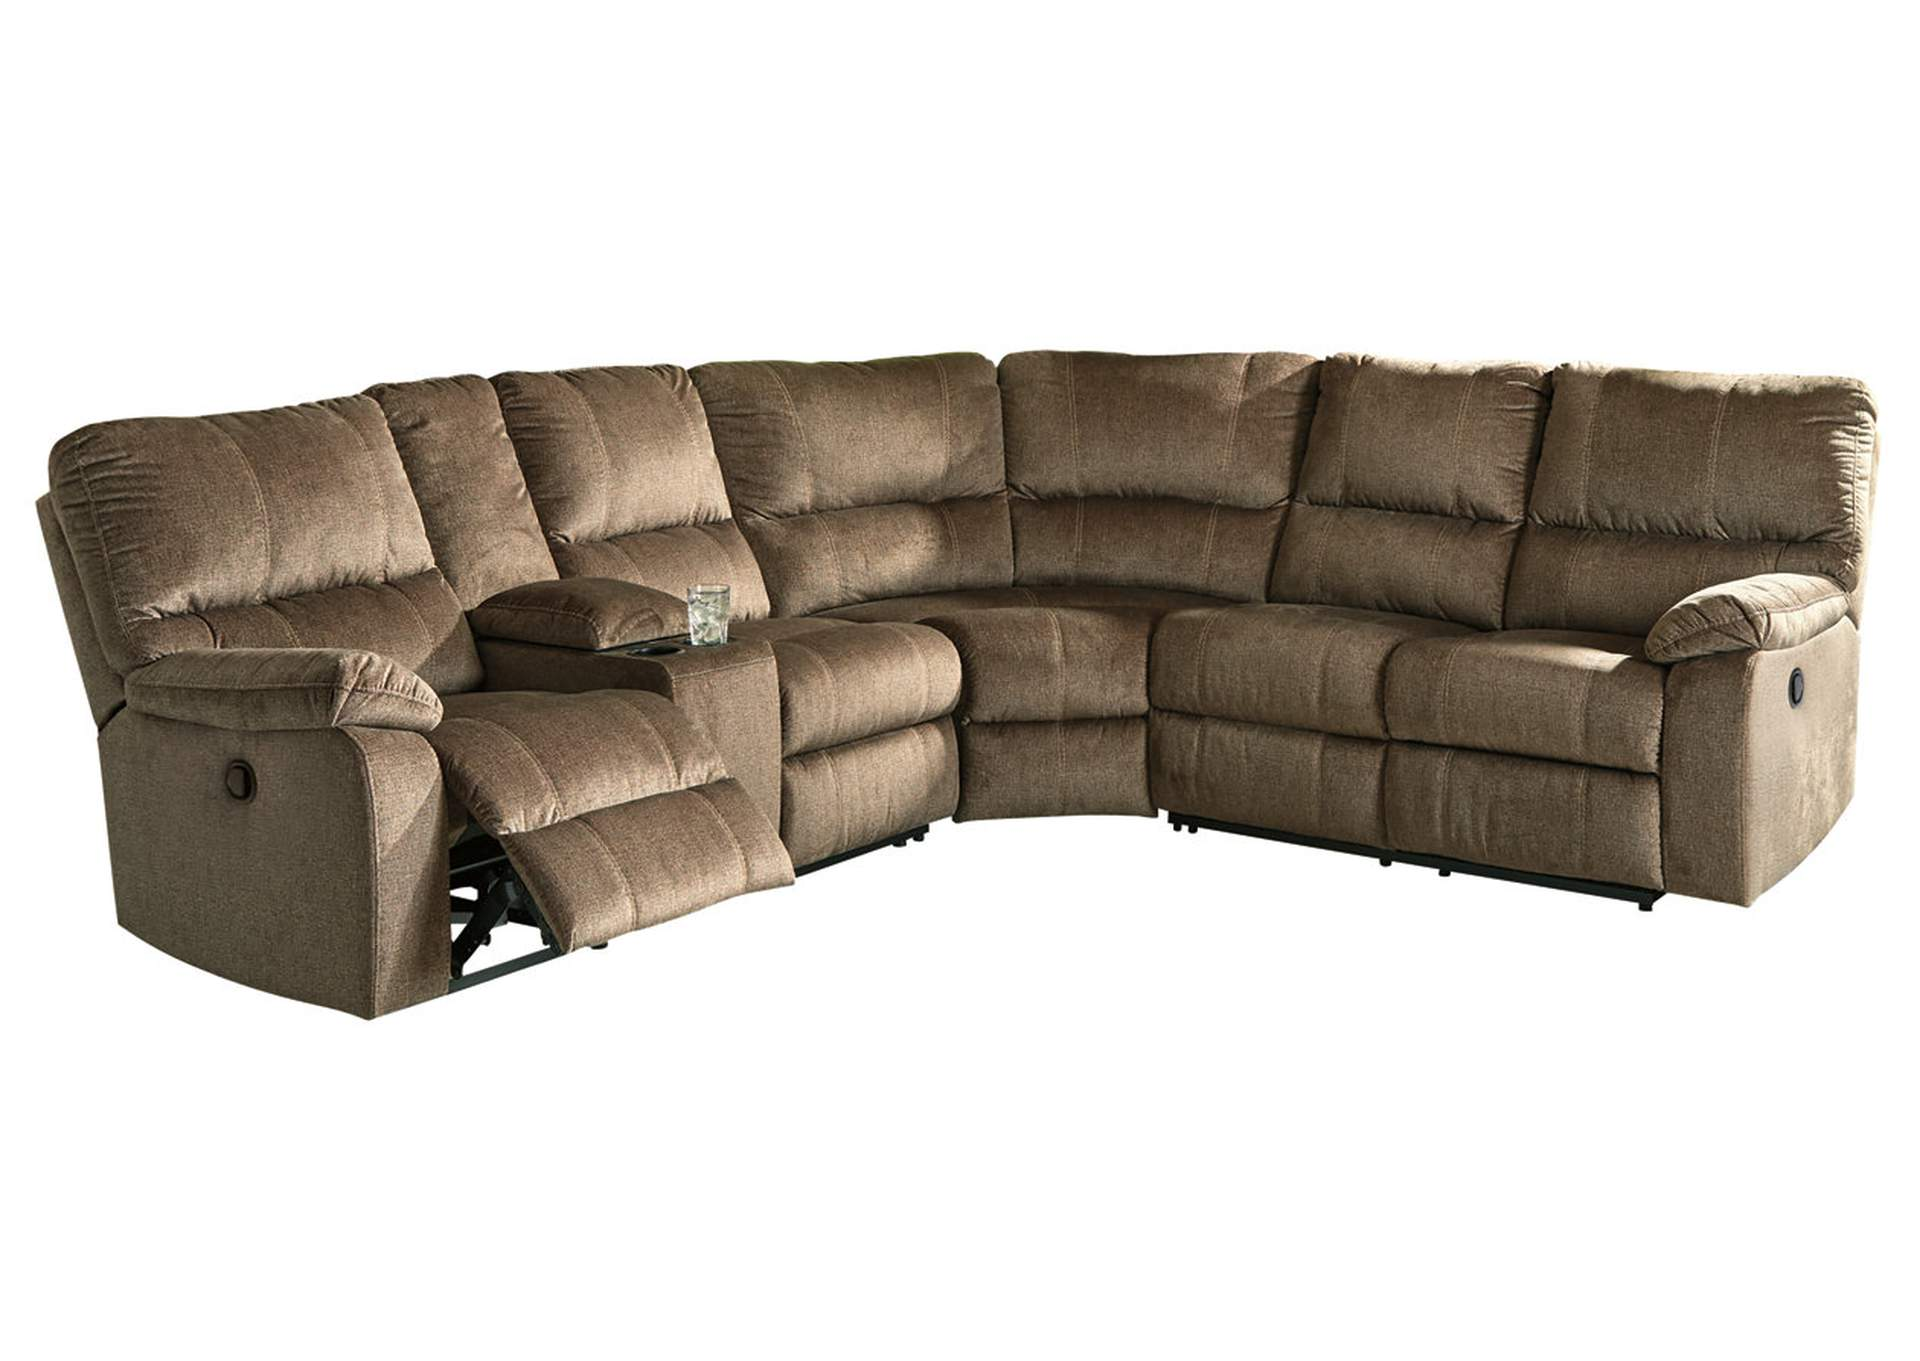 Urbino Mocha Reclining Sectional w/Console,Signature Design By Ashley